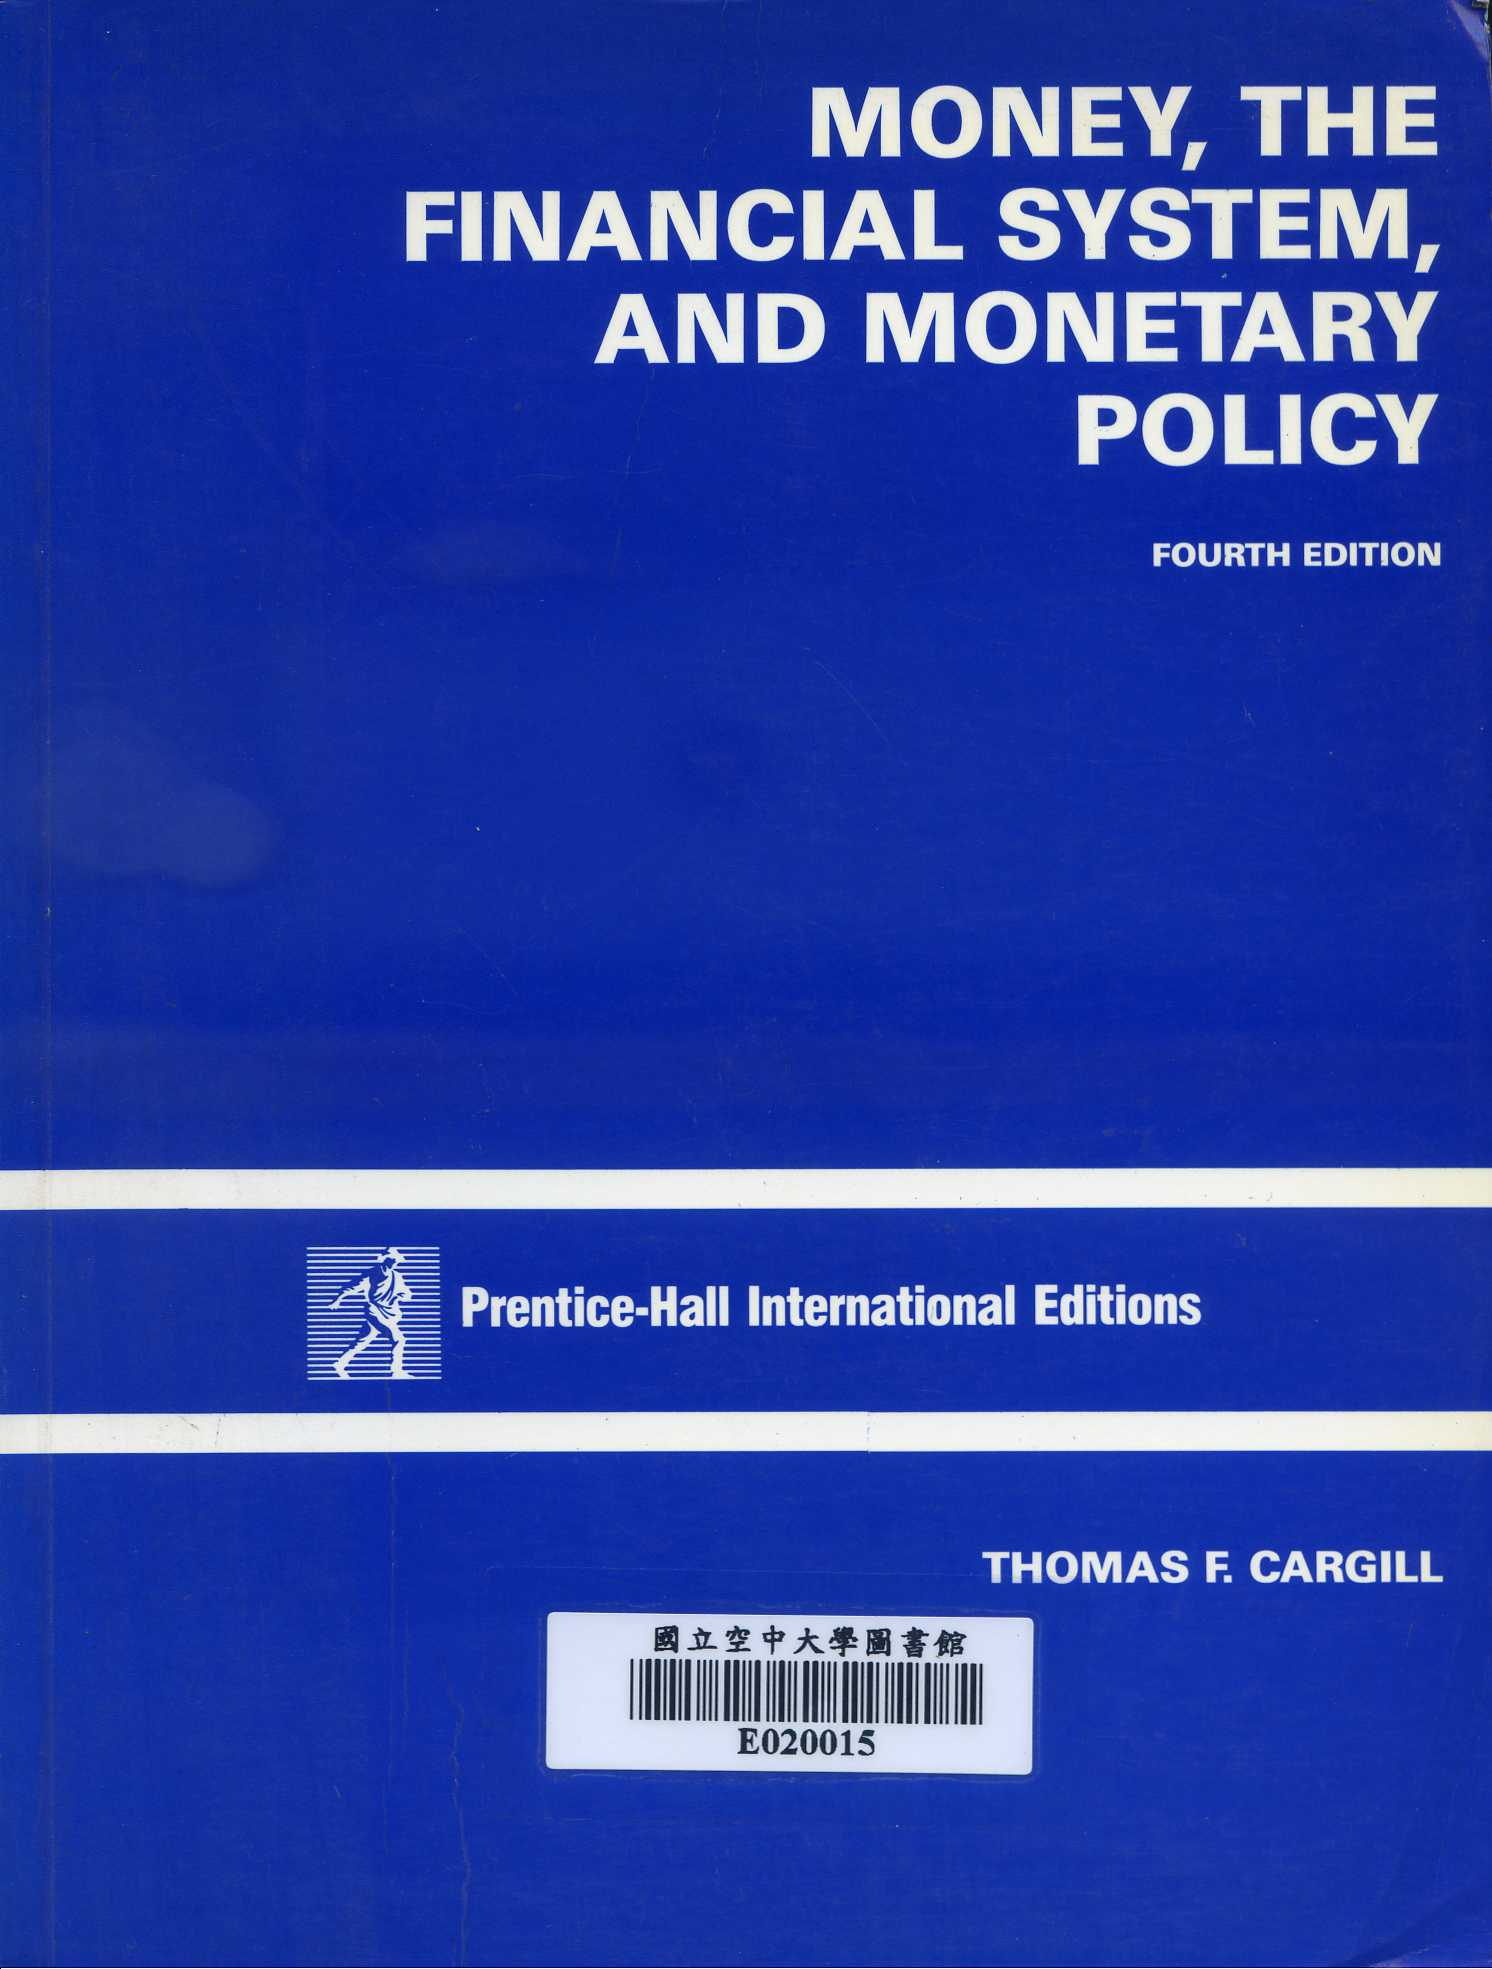 Money, the financial system, and monetary policy /